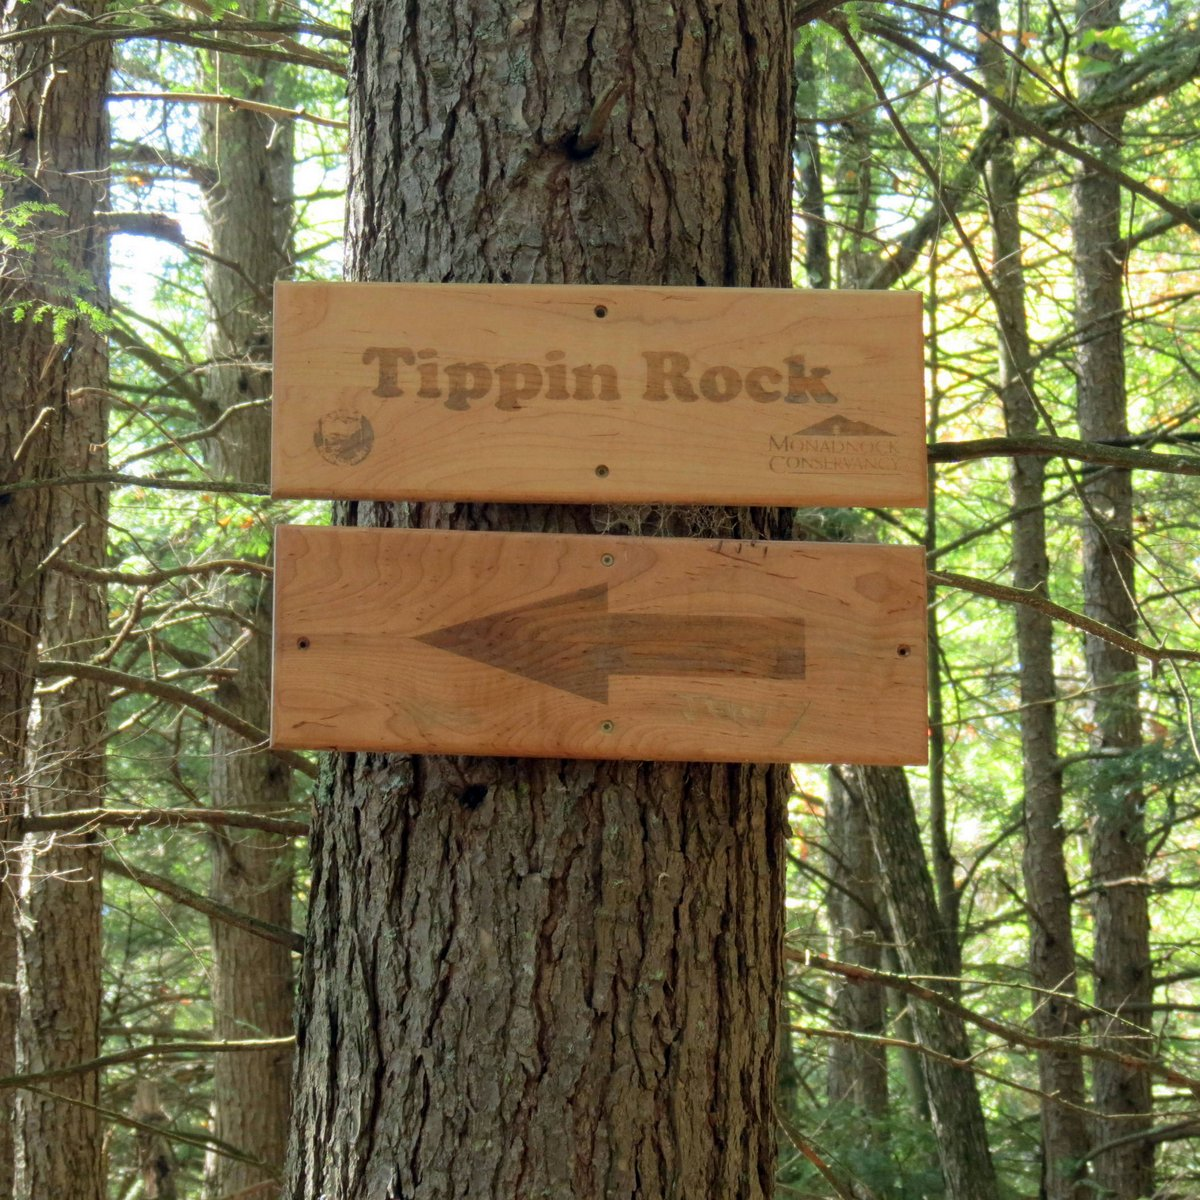 10. Tippin Rock Sign